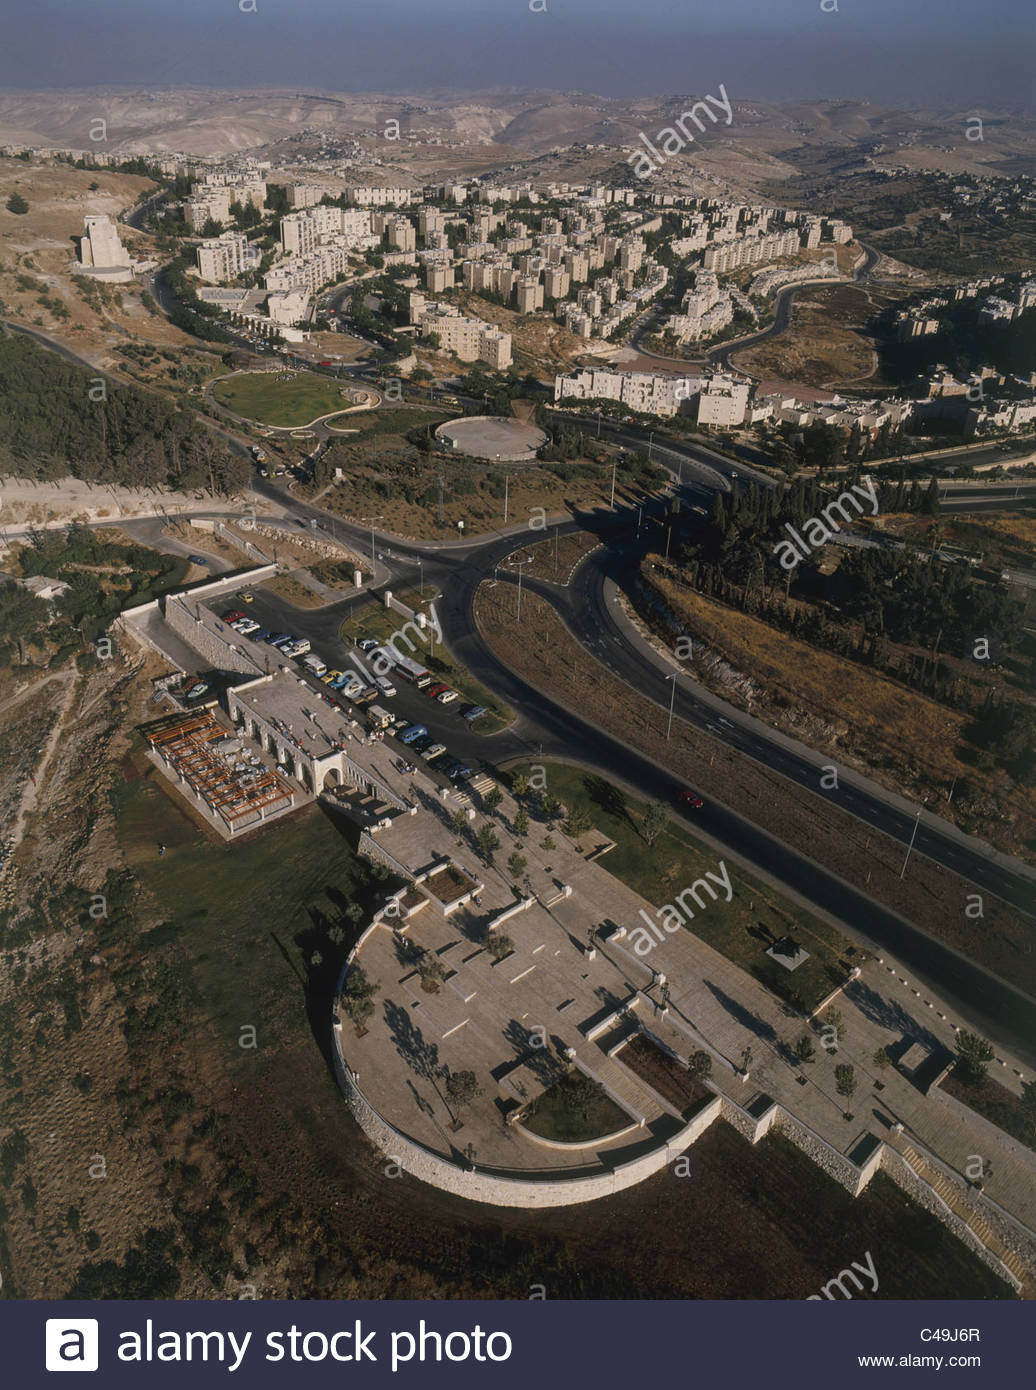 Haas Promenade Jerusalem, Aerial photograph of the Haas promenade in the new city of ...